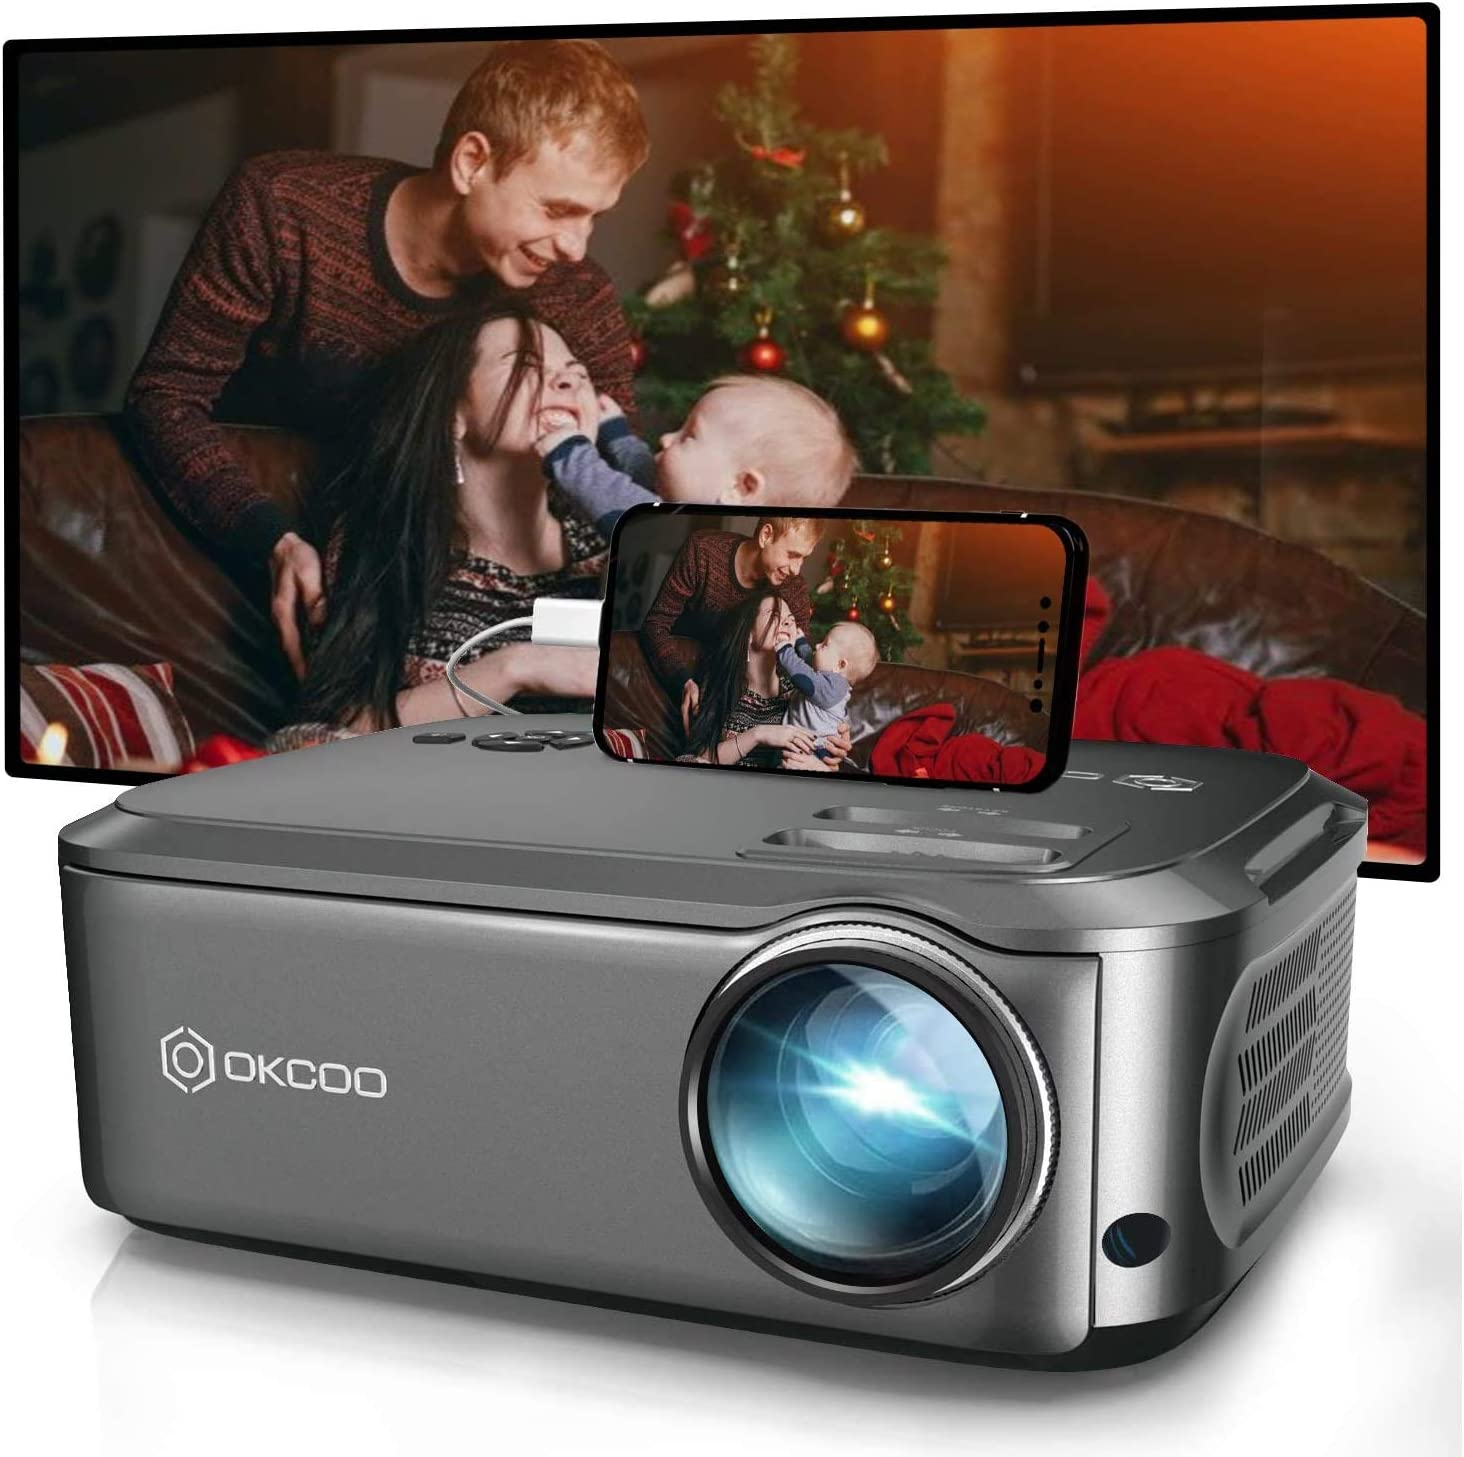 50% Off Coupon – 1080P Projector for Movies Compatible With Smartphones and Other Devices